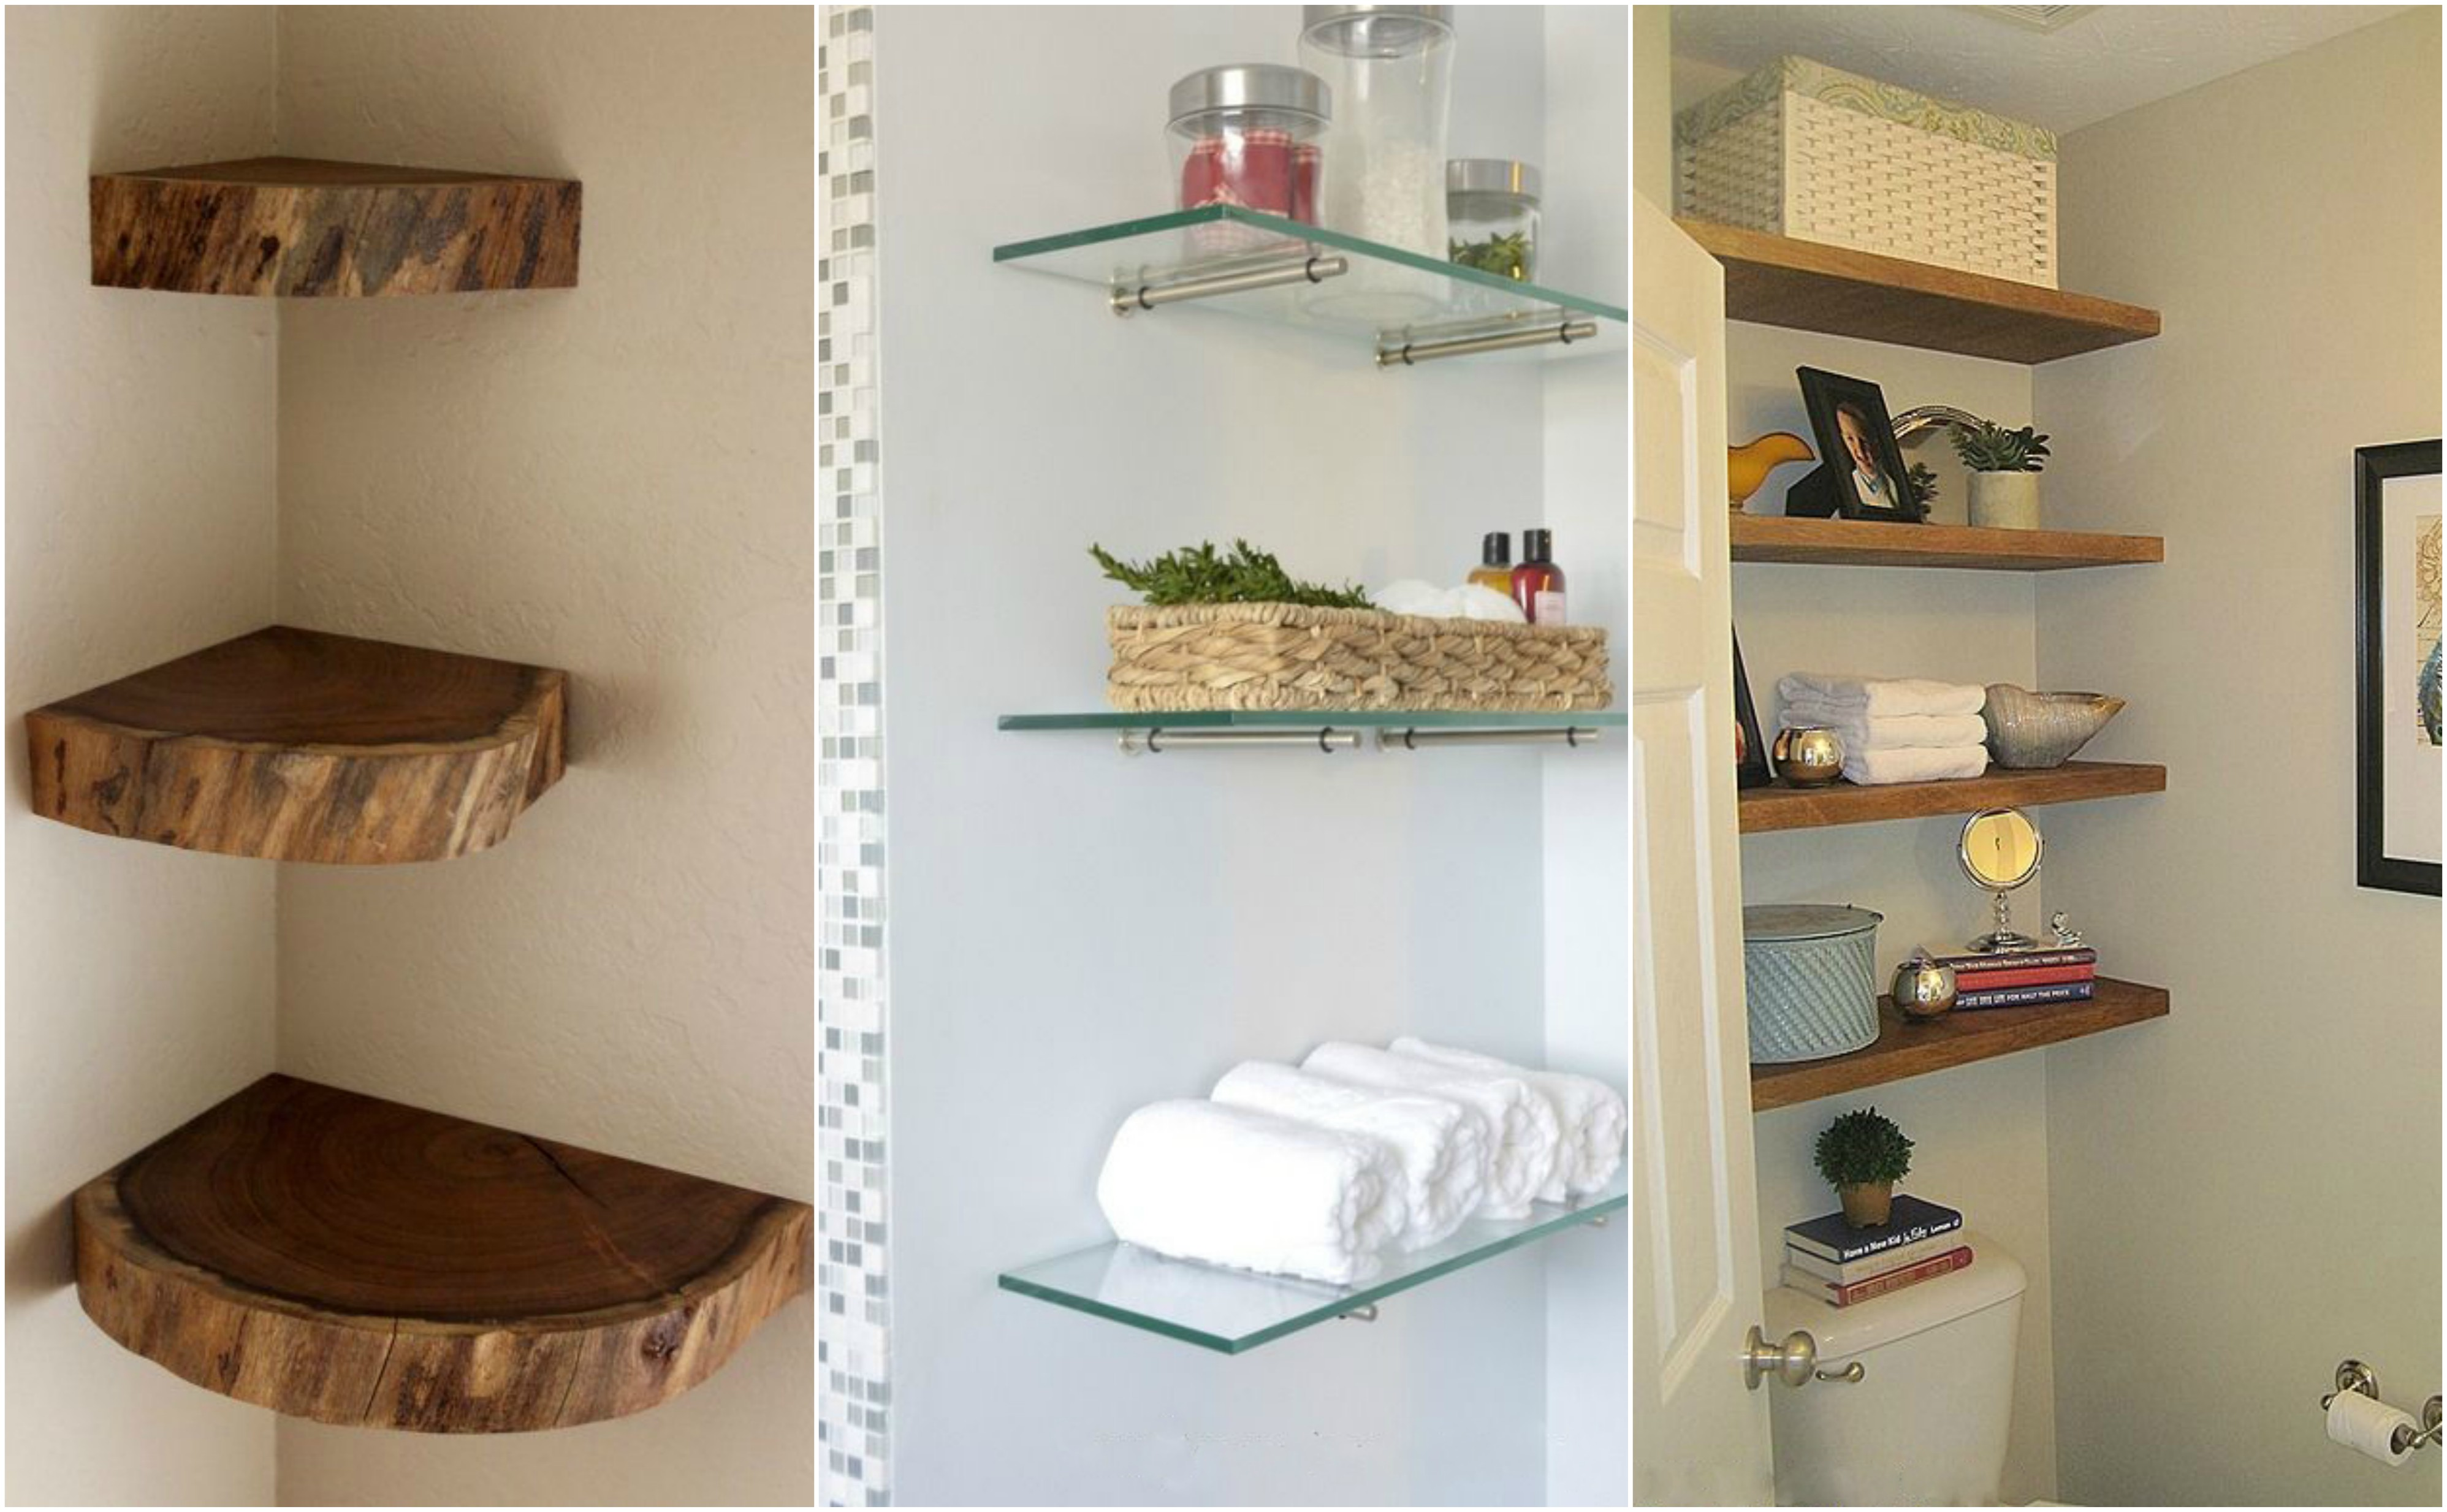 DIY-Floating-Shelves-and-Bathroom-Update